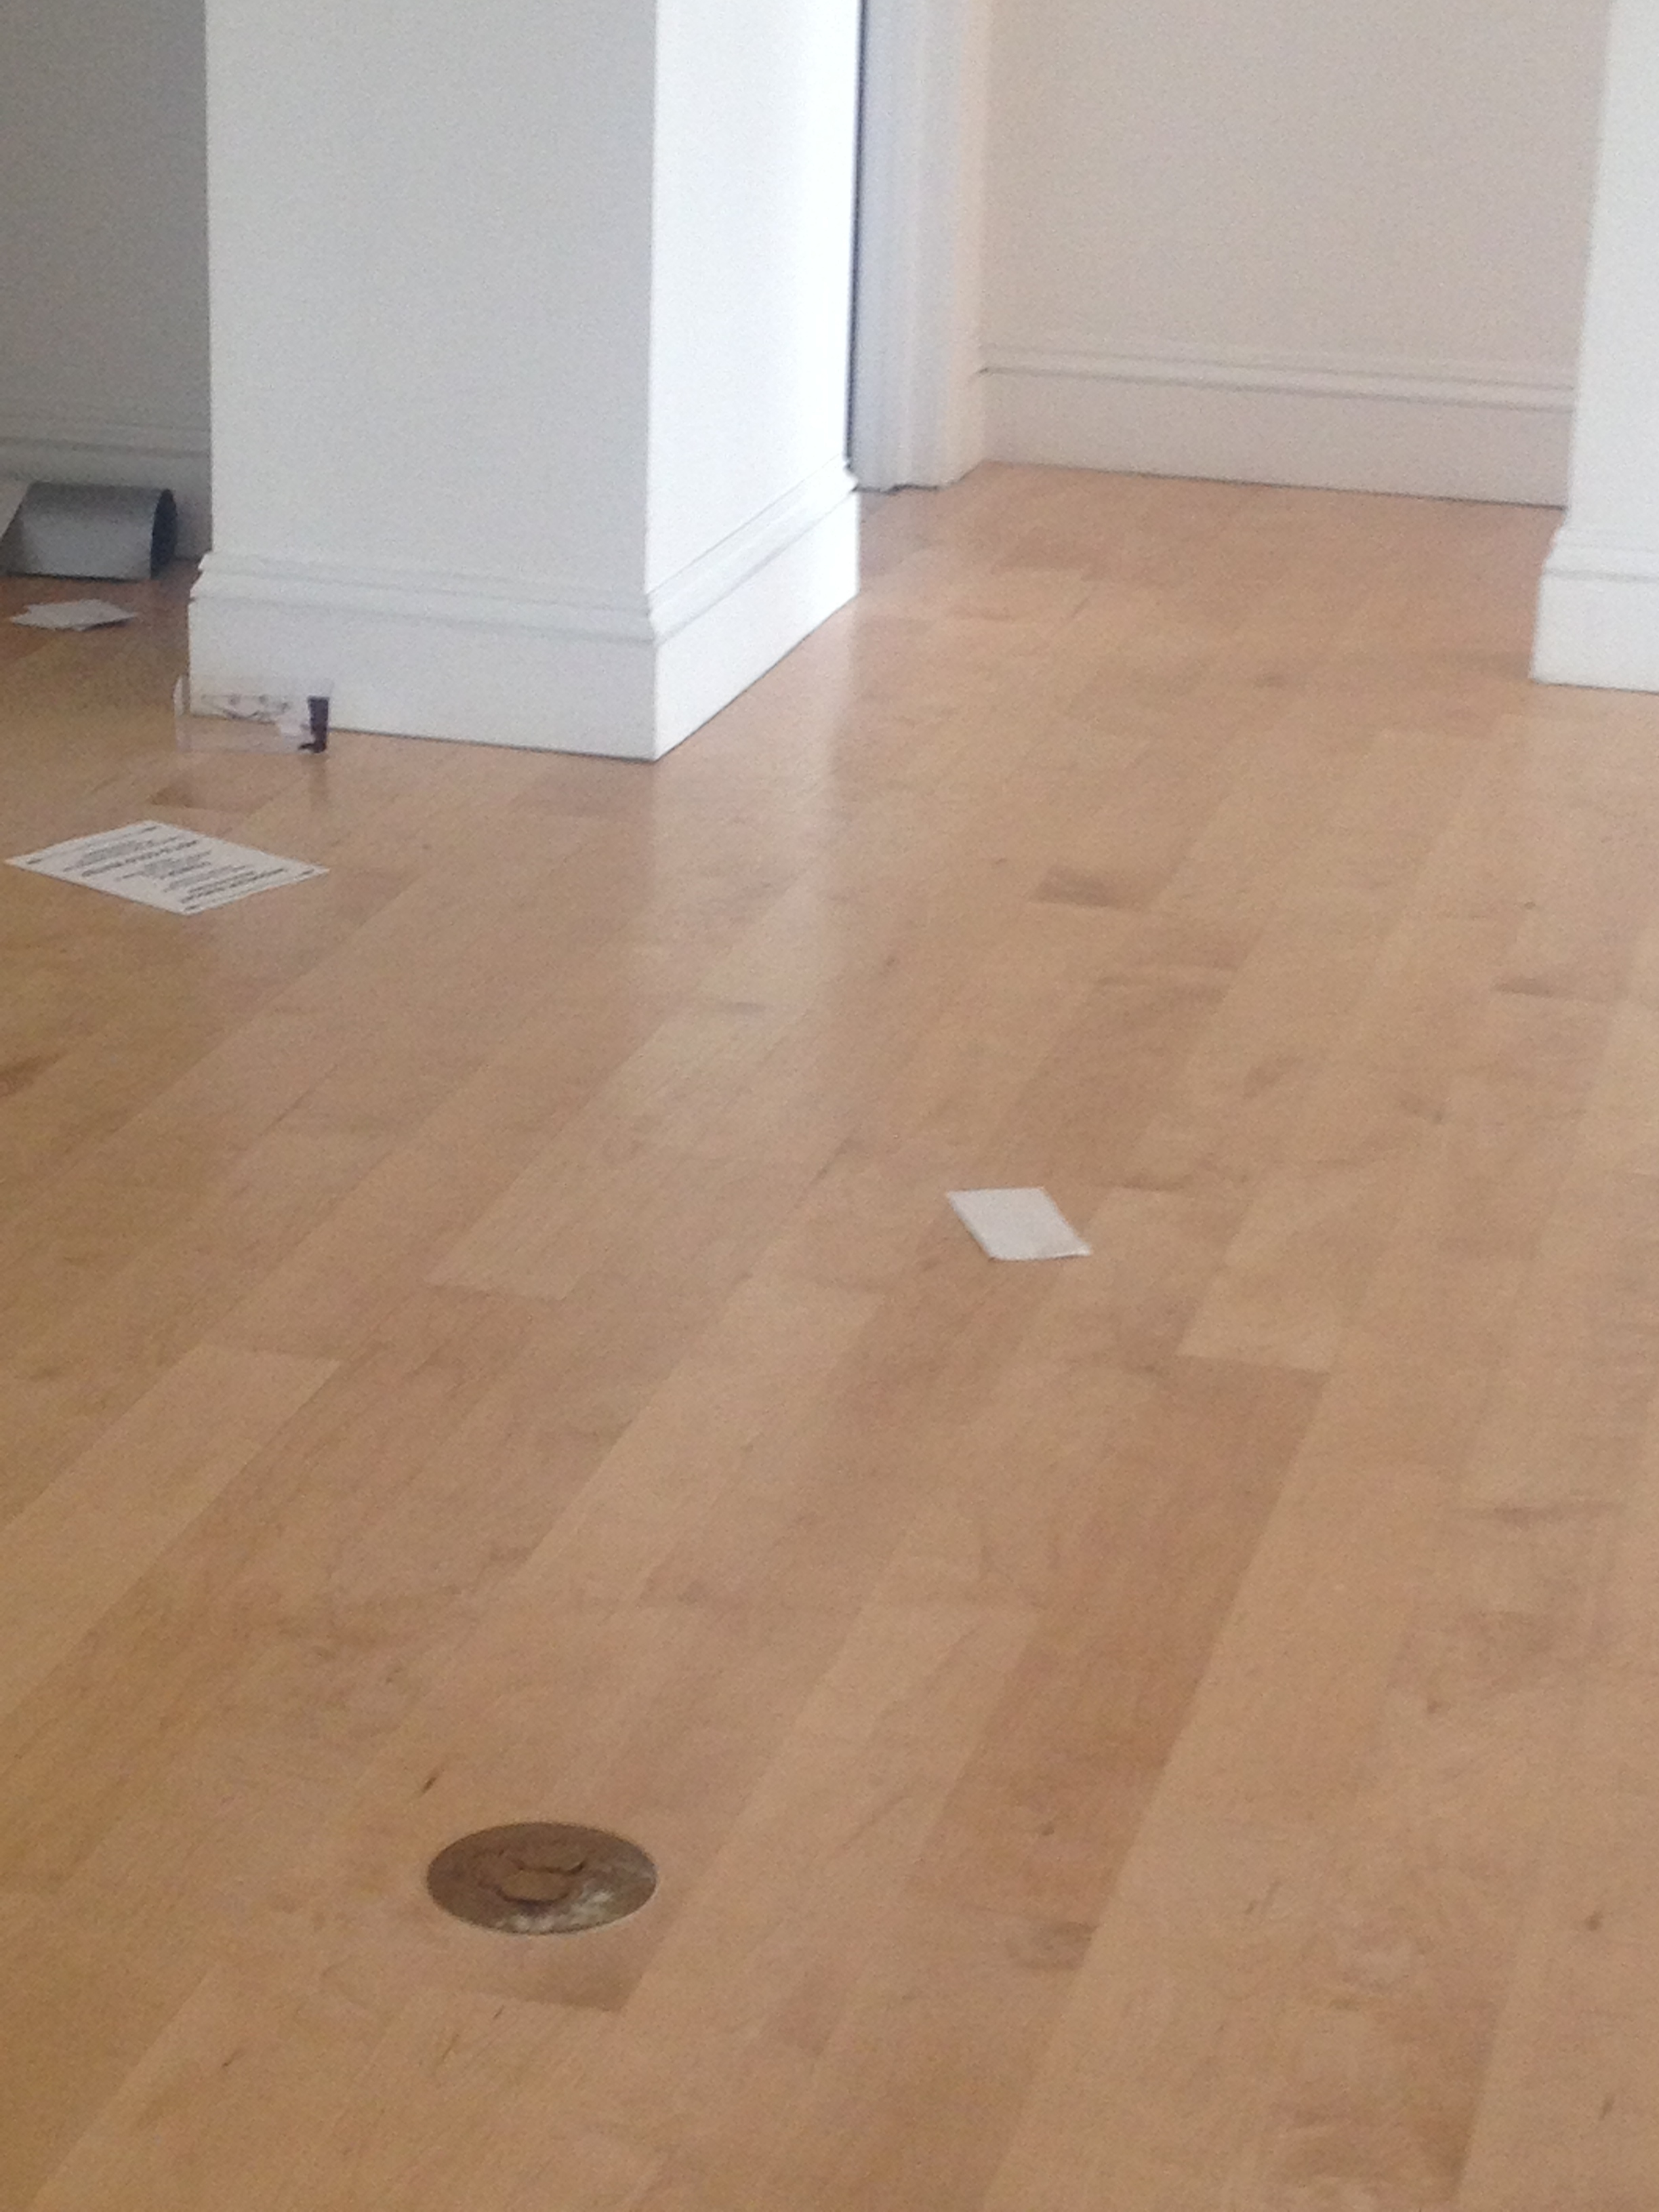 Apex wood floors inc coupons near me in miami 8coupons for Wood flooring miami